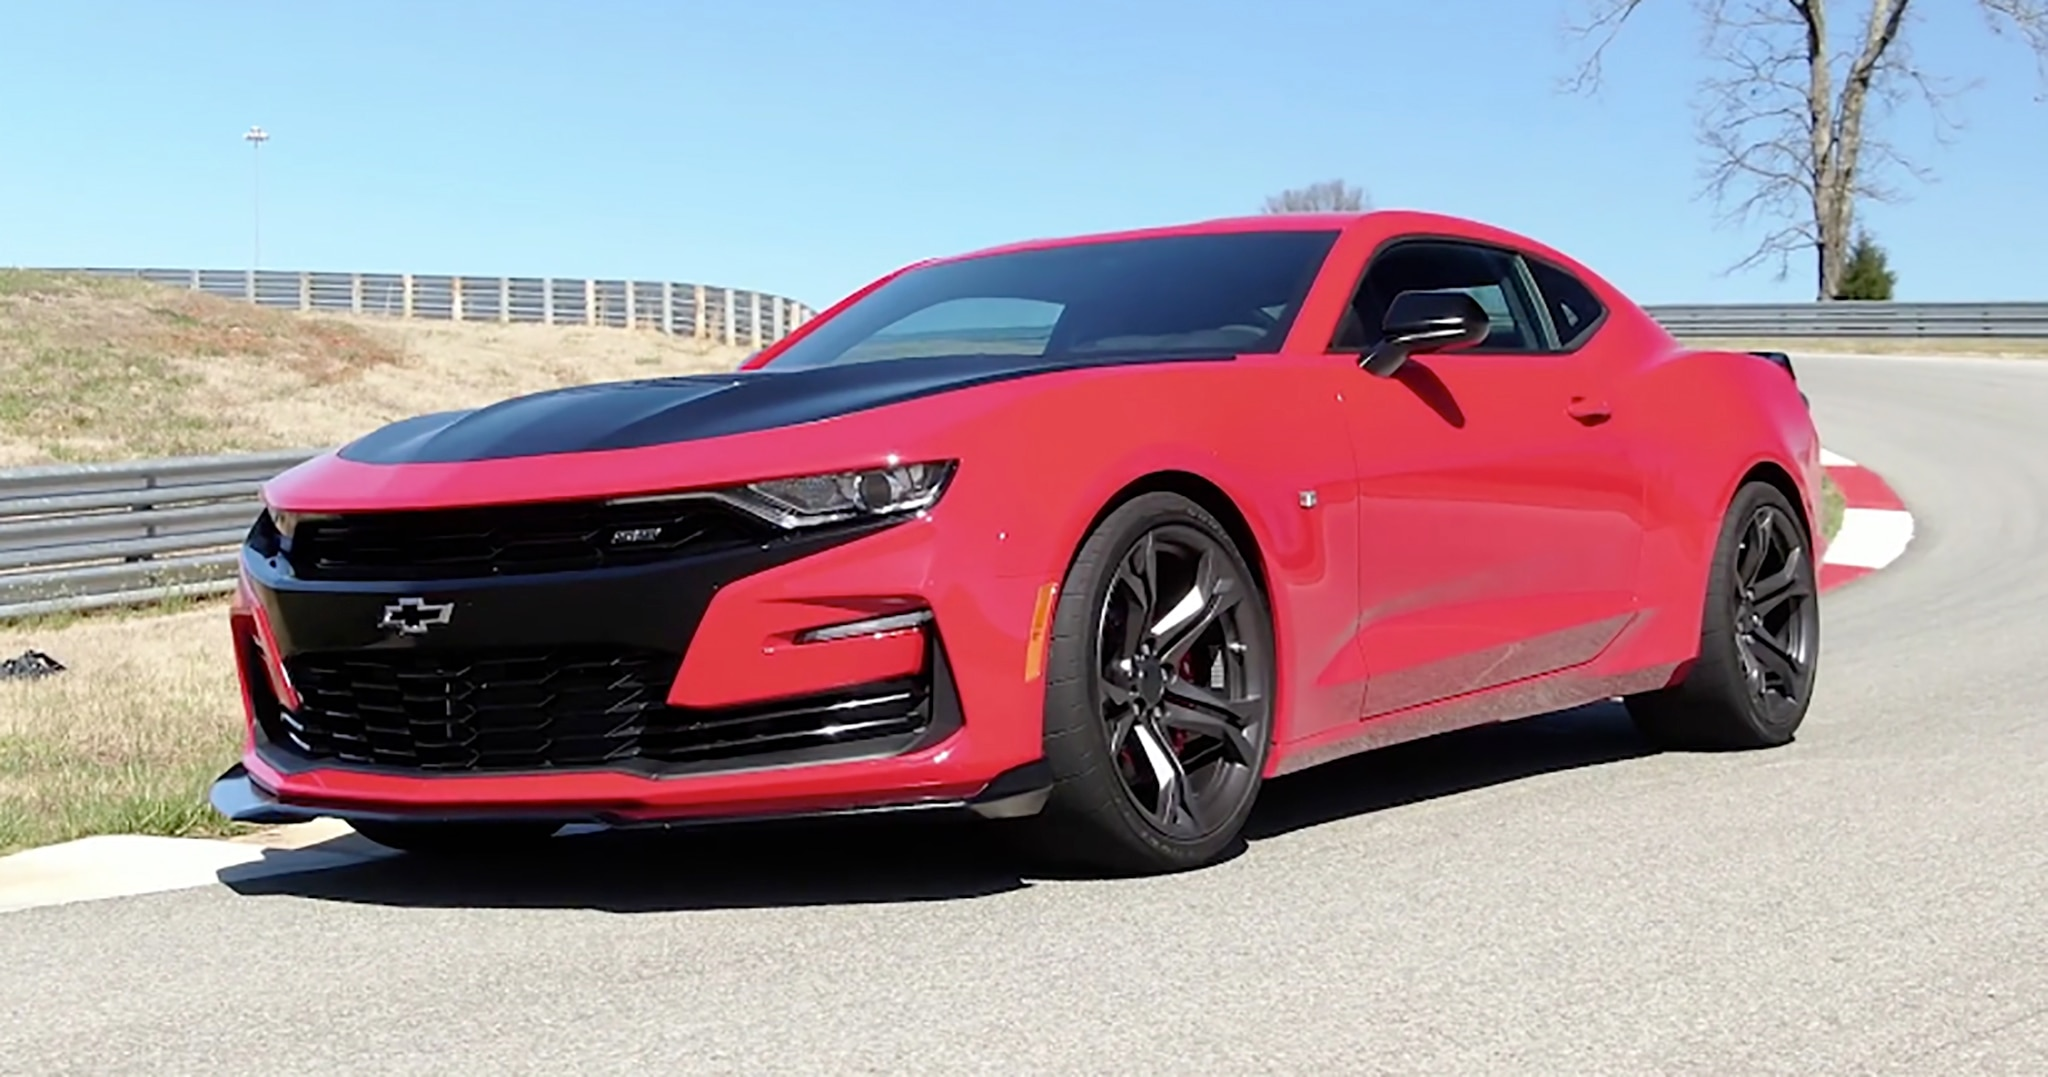 Camaro SS 1LE Lap Video: Our Pro Racer Gets Gnarly ...